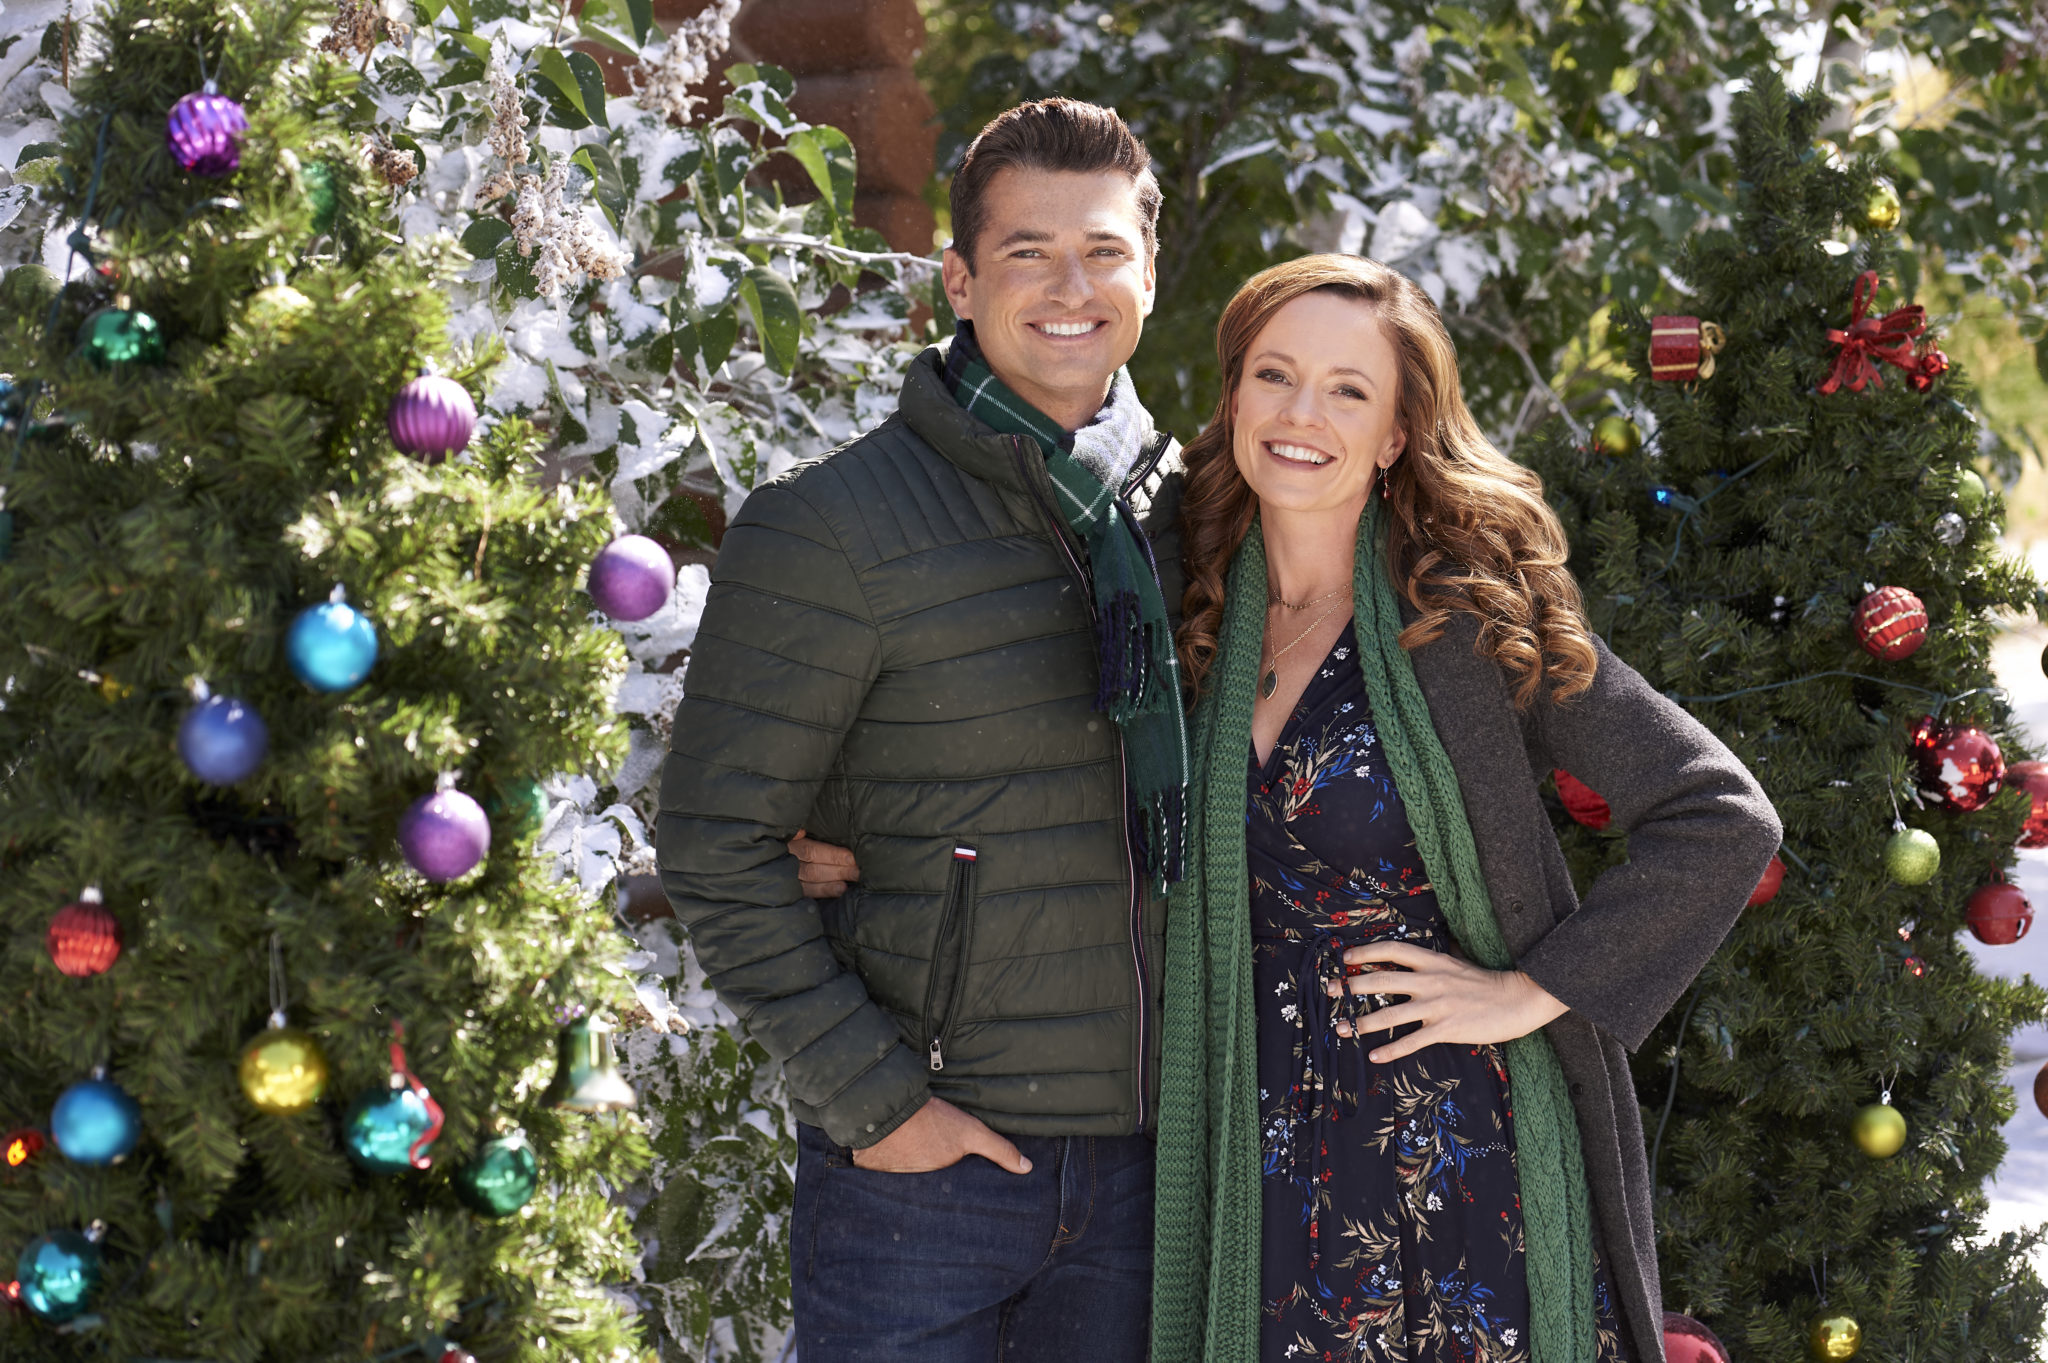 Check Inn To Christmas, Photo: Wes Brown, Rachel Boston Credit: ©2019 Crown Media United States LLC/Photographer: Fred Hayes